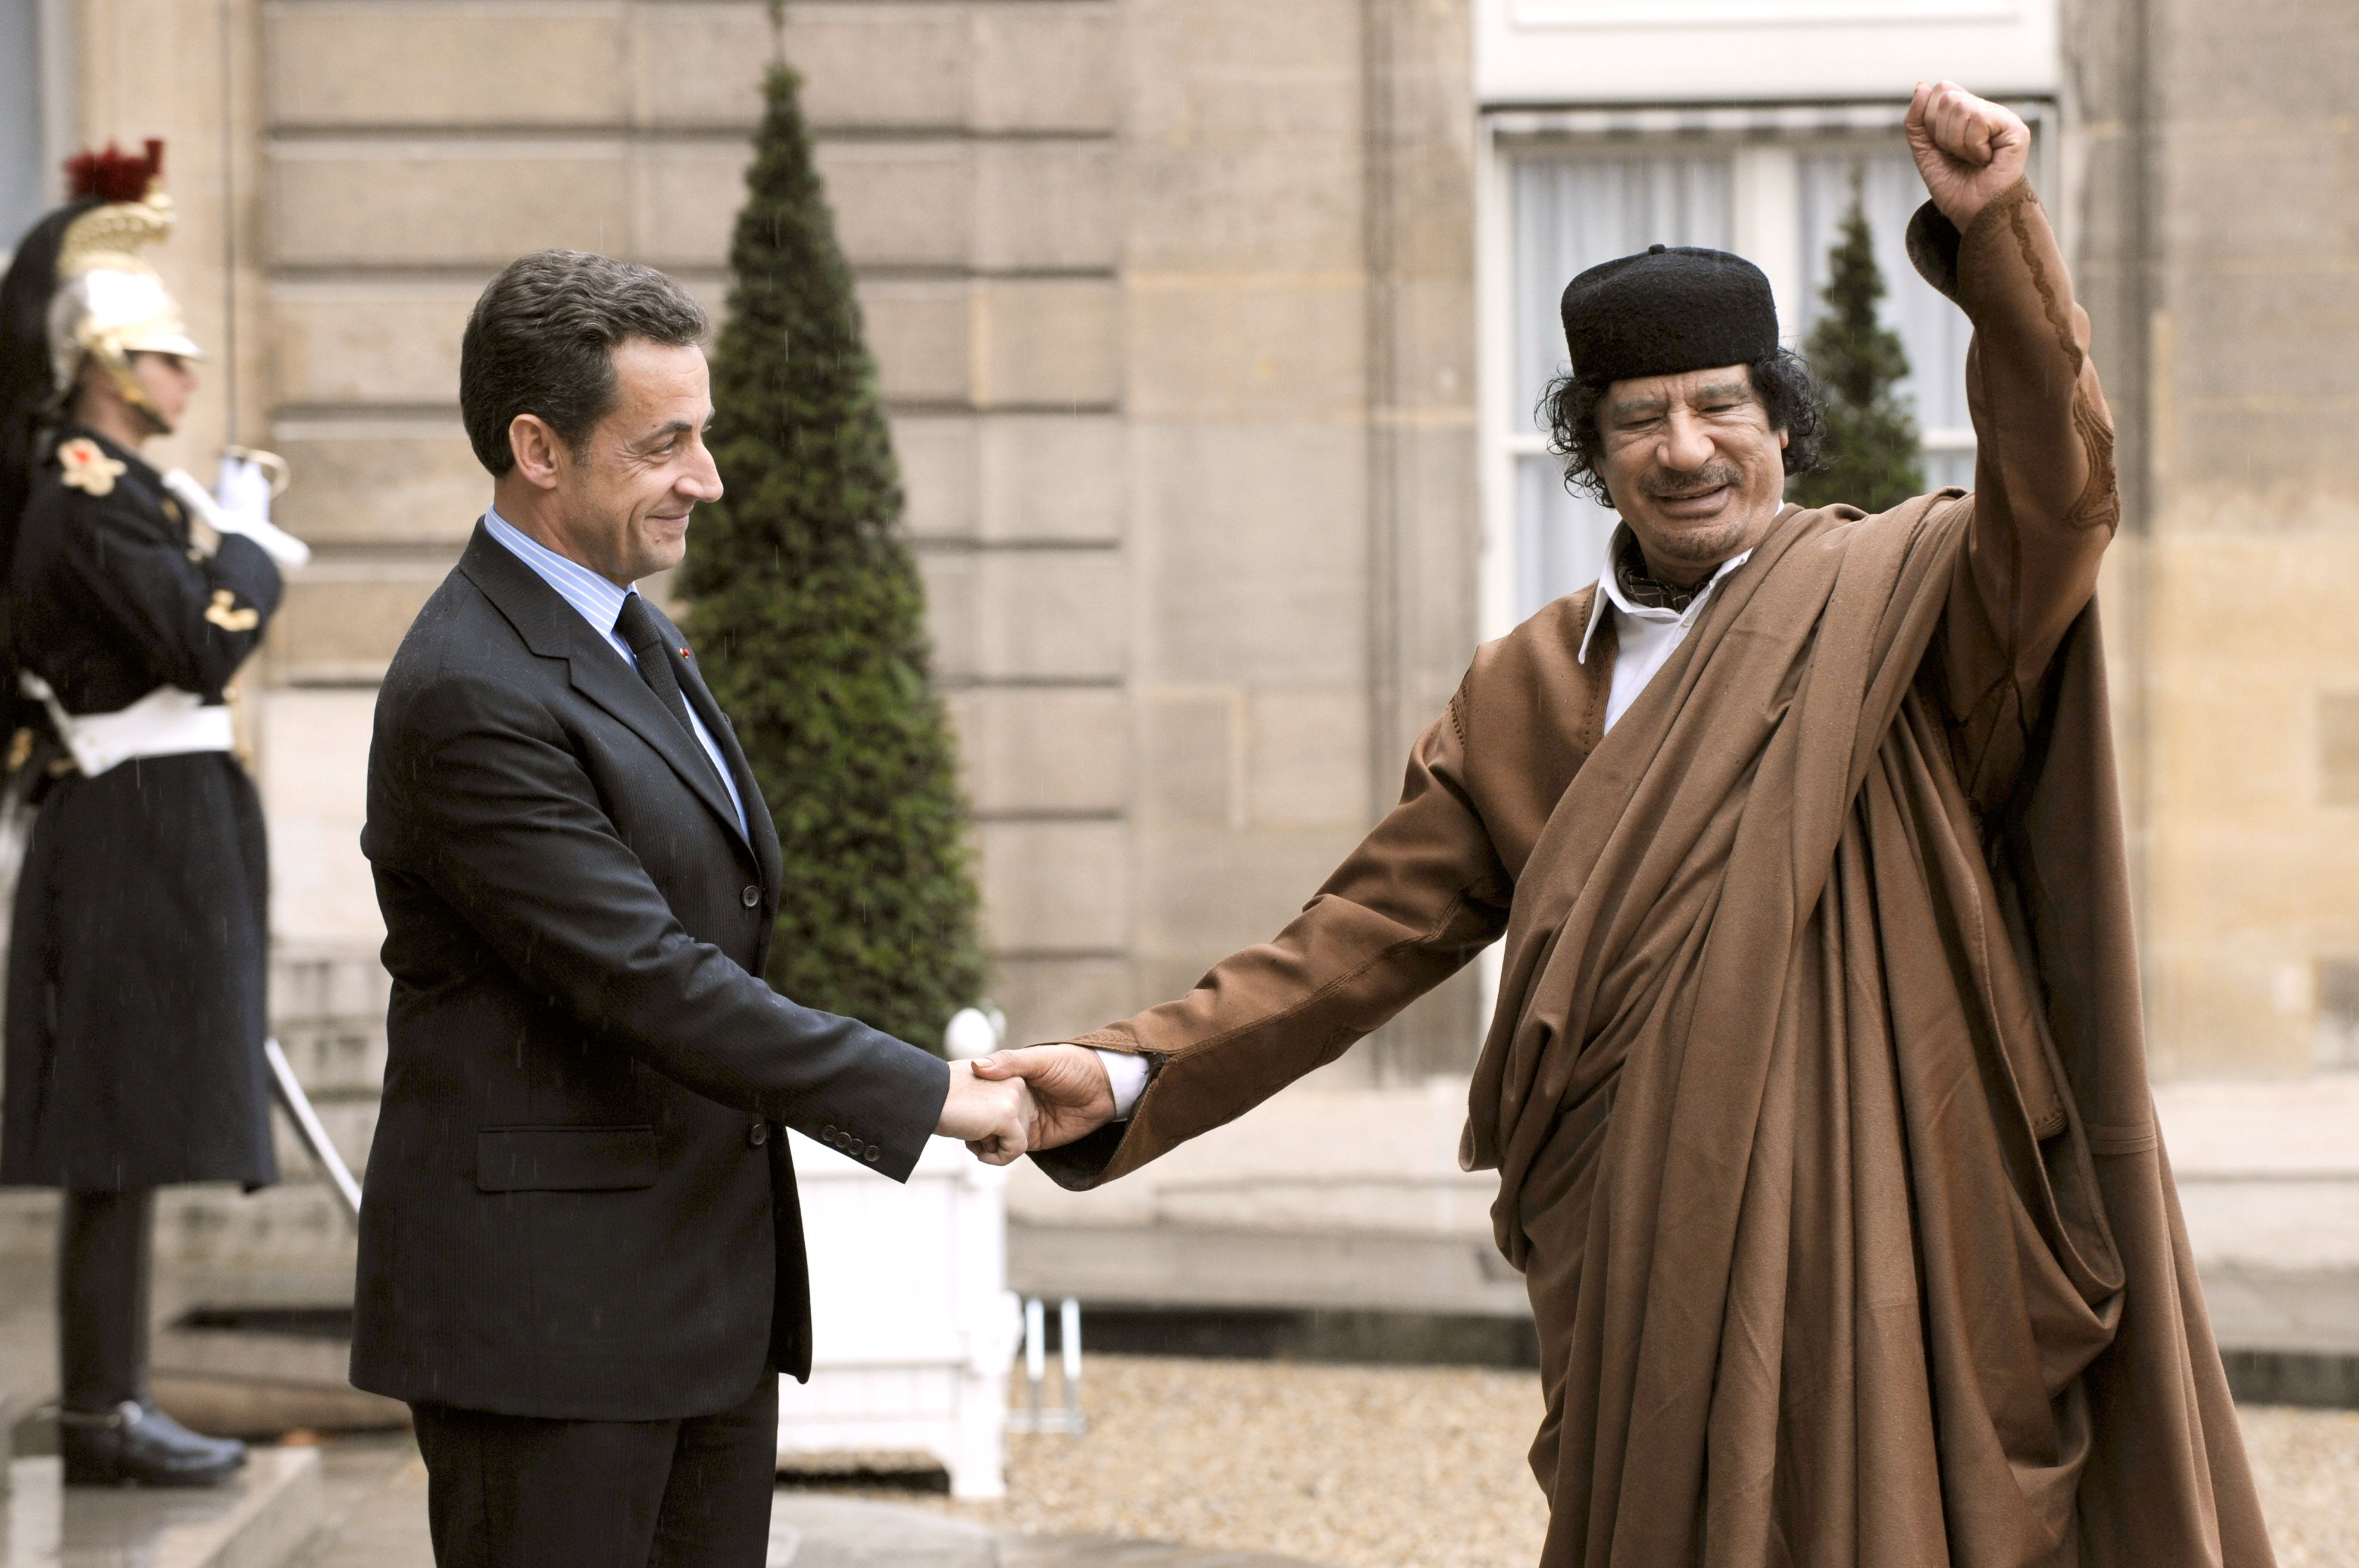 French president Nicolas Sarkozy (L) welcomes Libyan leader Moamer Kadhafi 10 December 2007 at the French Elysee Palace in Paris. A tent for Kadhafi has been erected in the gardens of the Hotel Marigny, the 19th-century mansion which is used as an official guesthouse for state visits. Kadhafi is on a five-day visit to France for a high-profile visit set to usher in multi-billion-euro nuclear and aviation contracts, even as critics lashed President Nicolas Sarkozy for inviting the former pariah. AFP PHOTO ERIC FEFERBERG (Photo credit should read ERIC FEFERBERG/AFP/Getty Images)